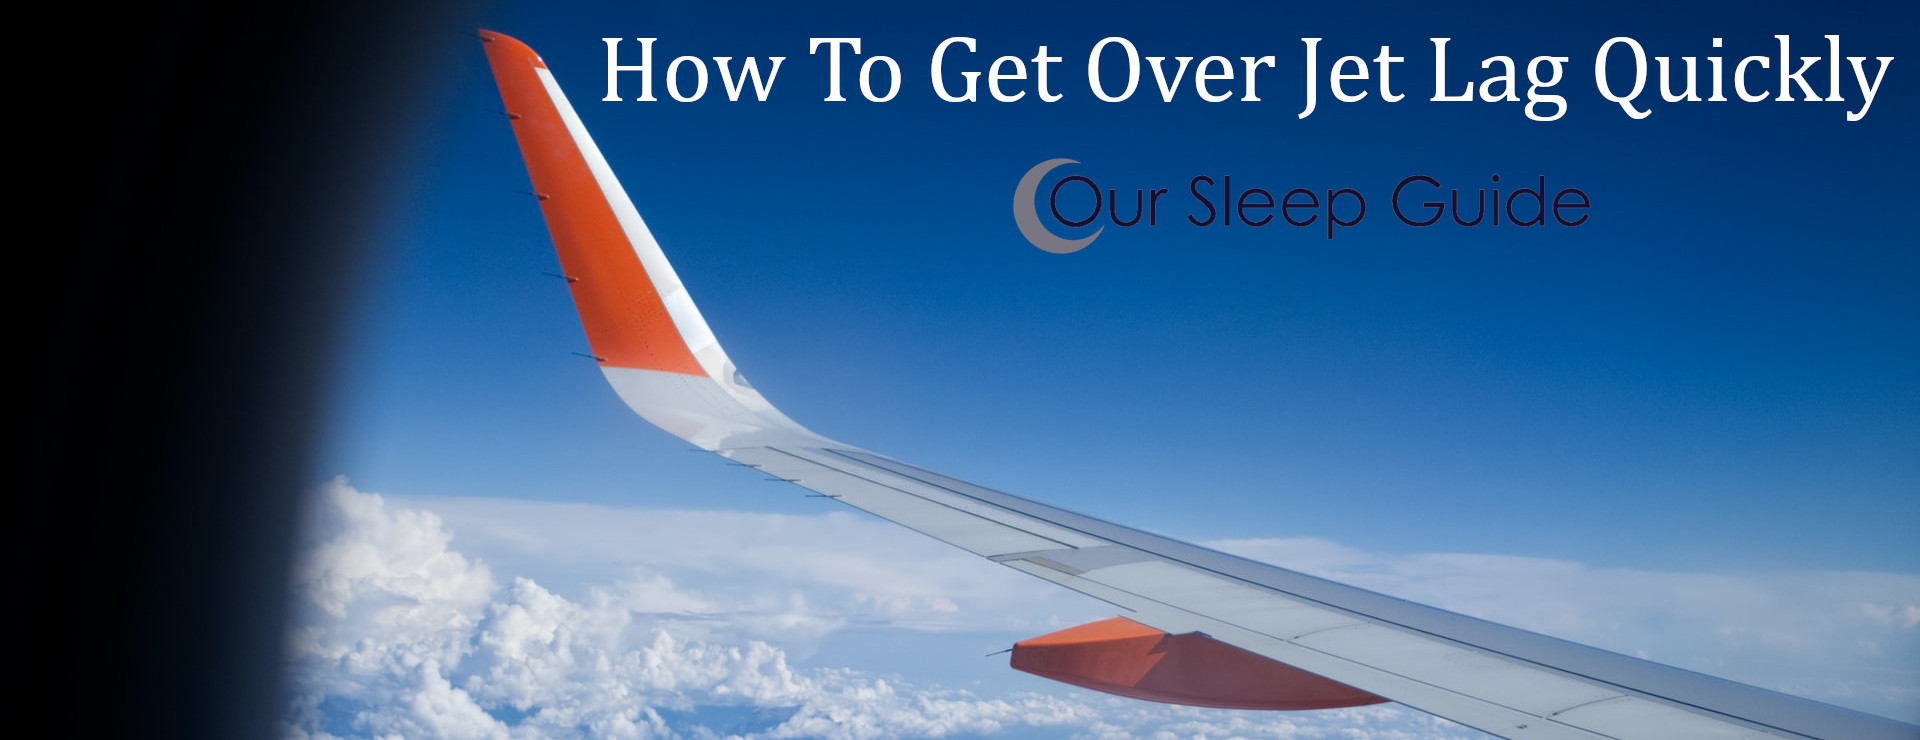 how to get over jetlag quickly